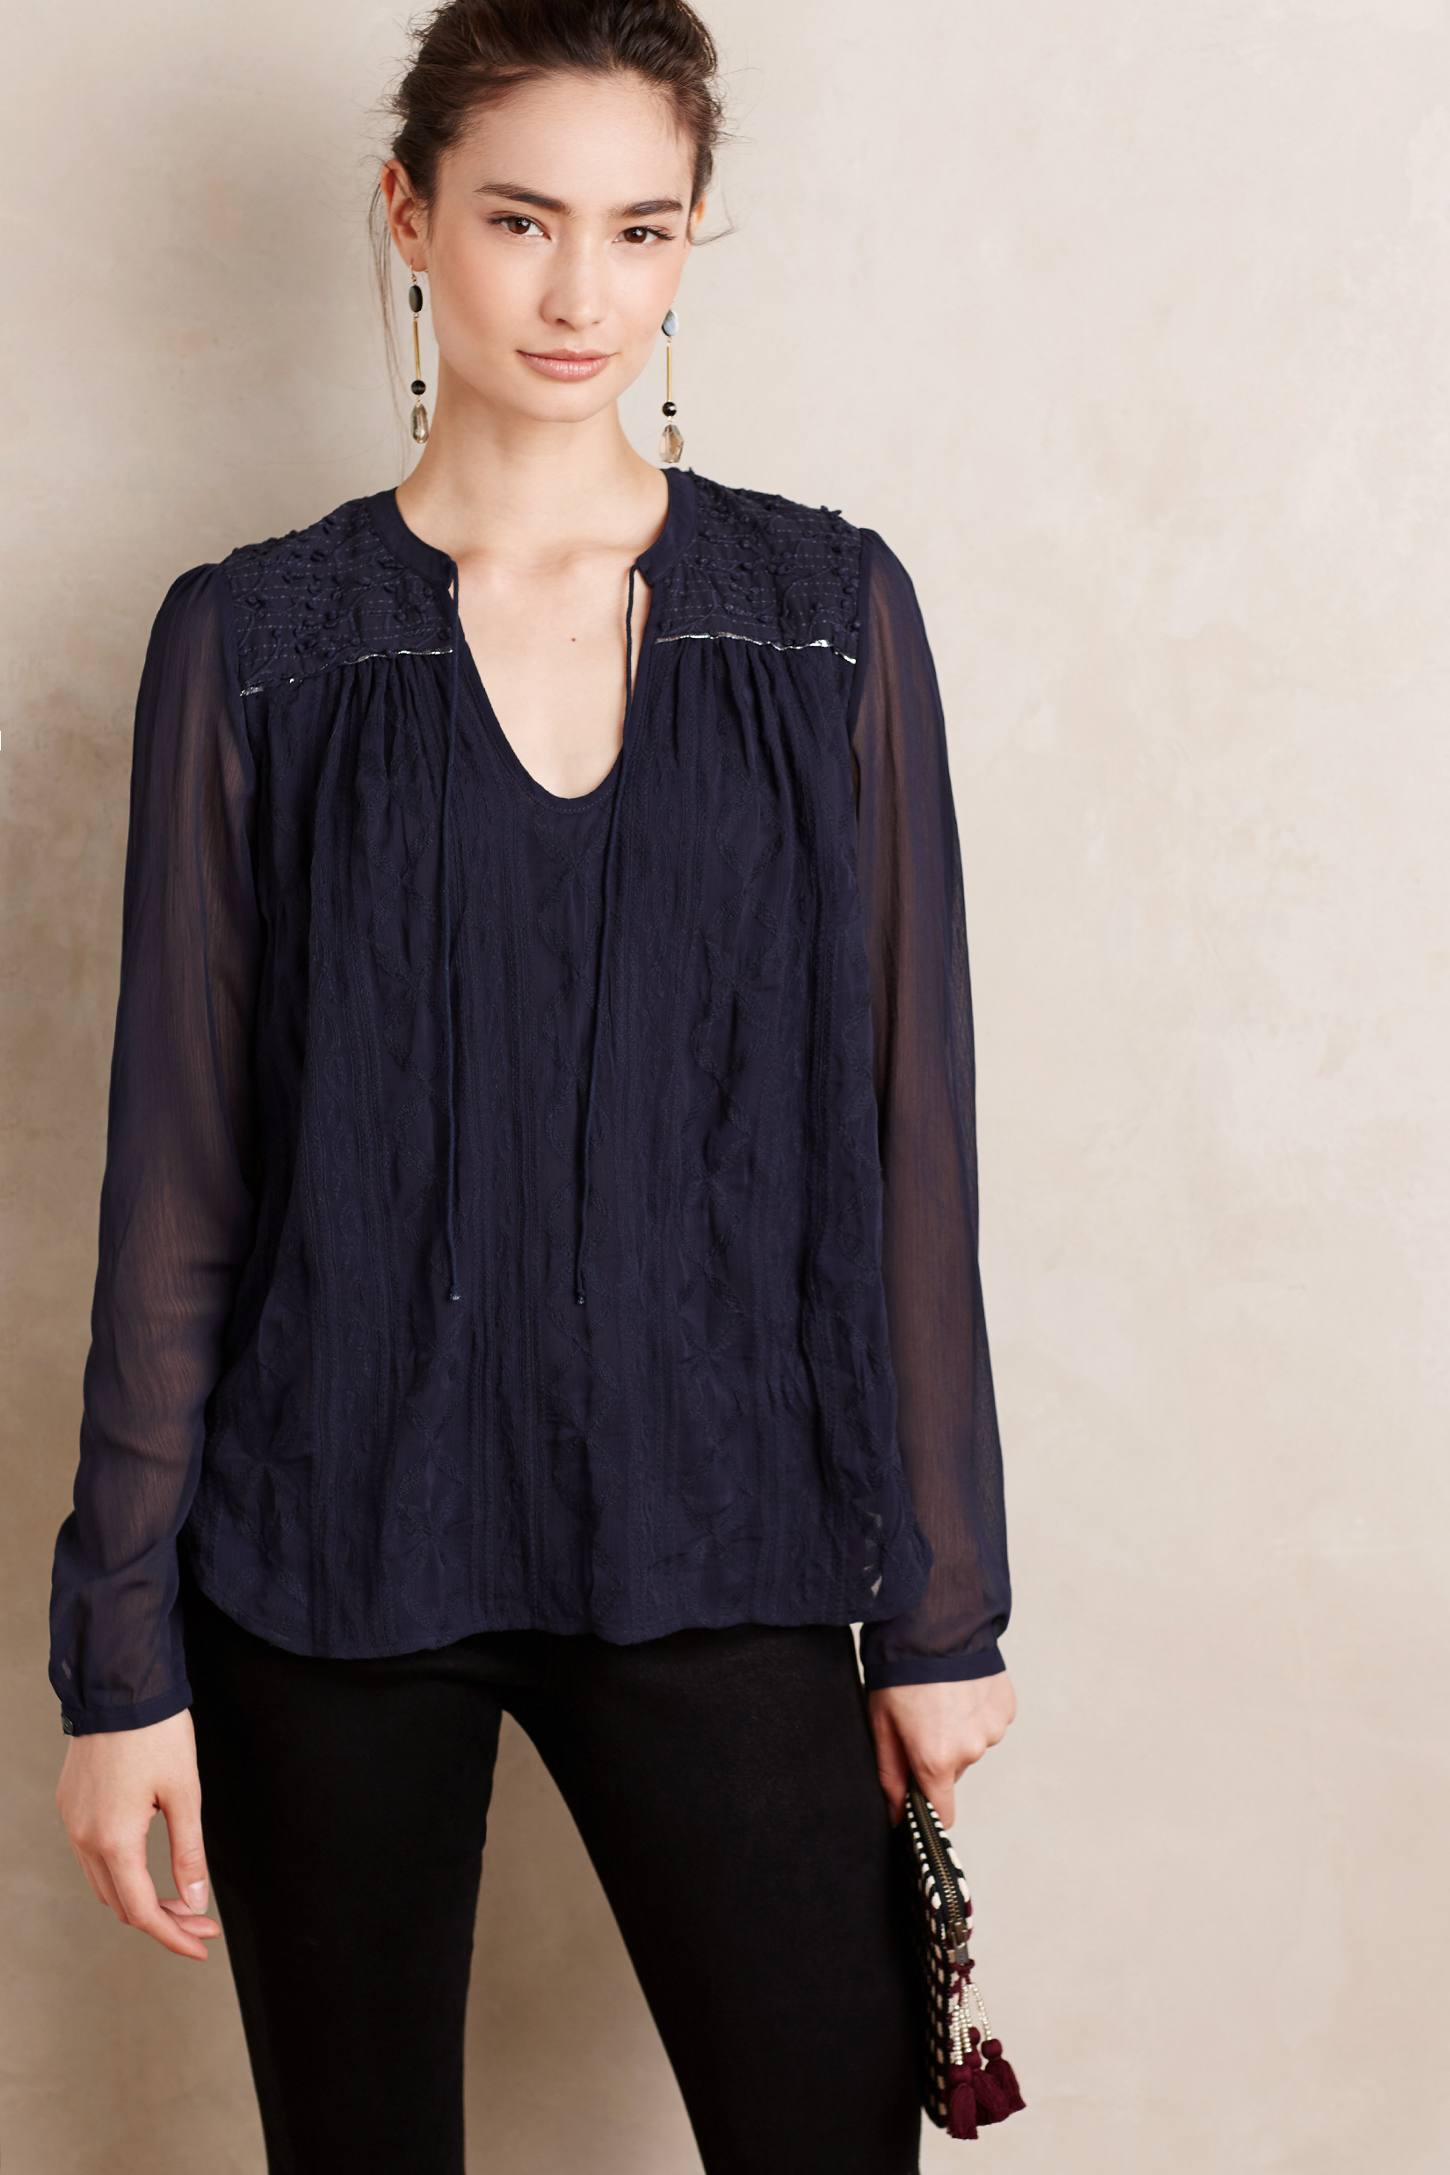 Paix Embroidered Blouse